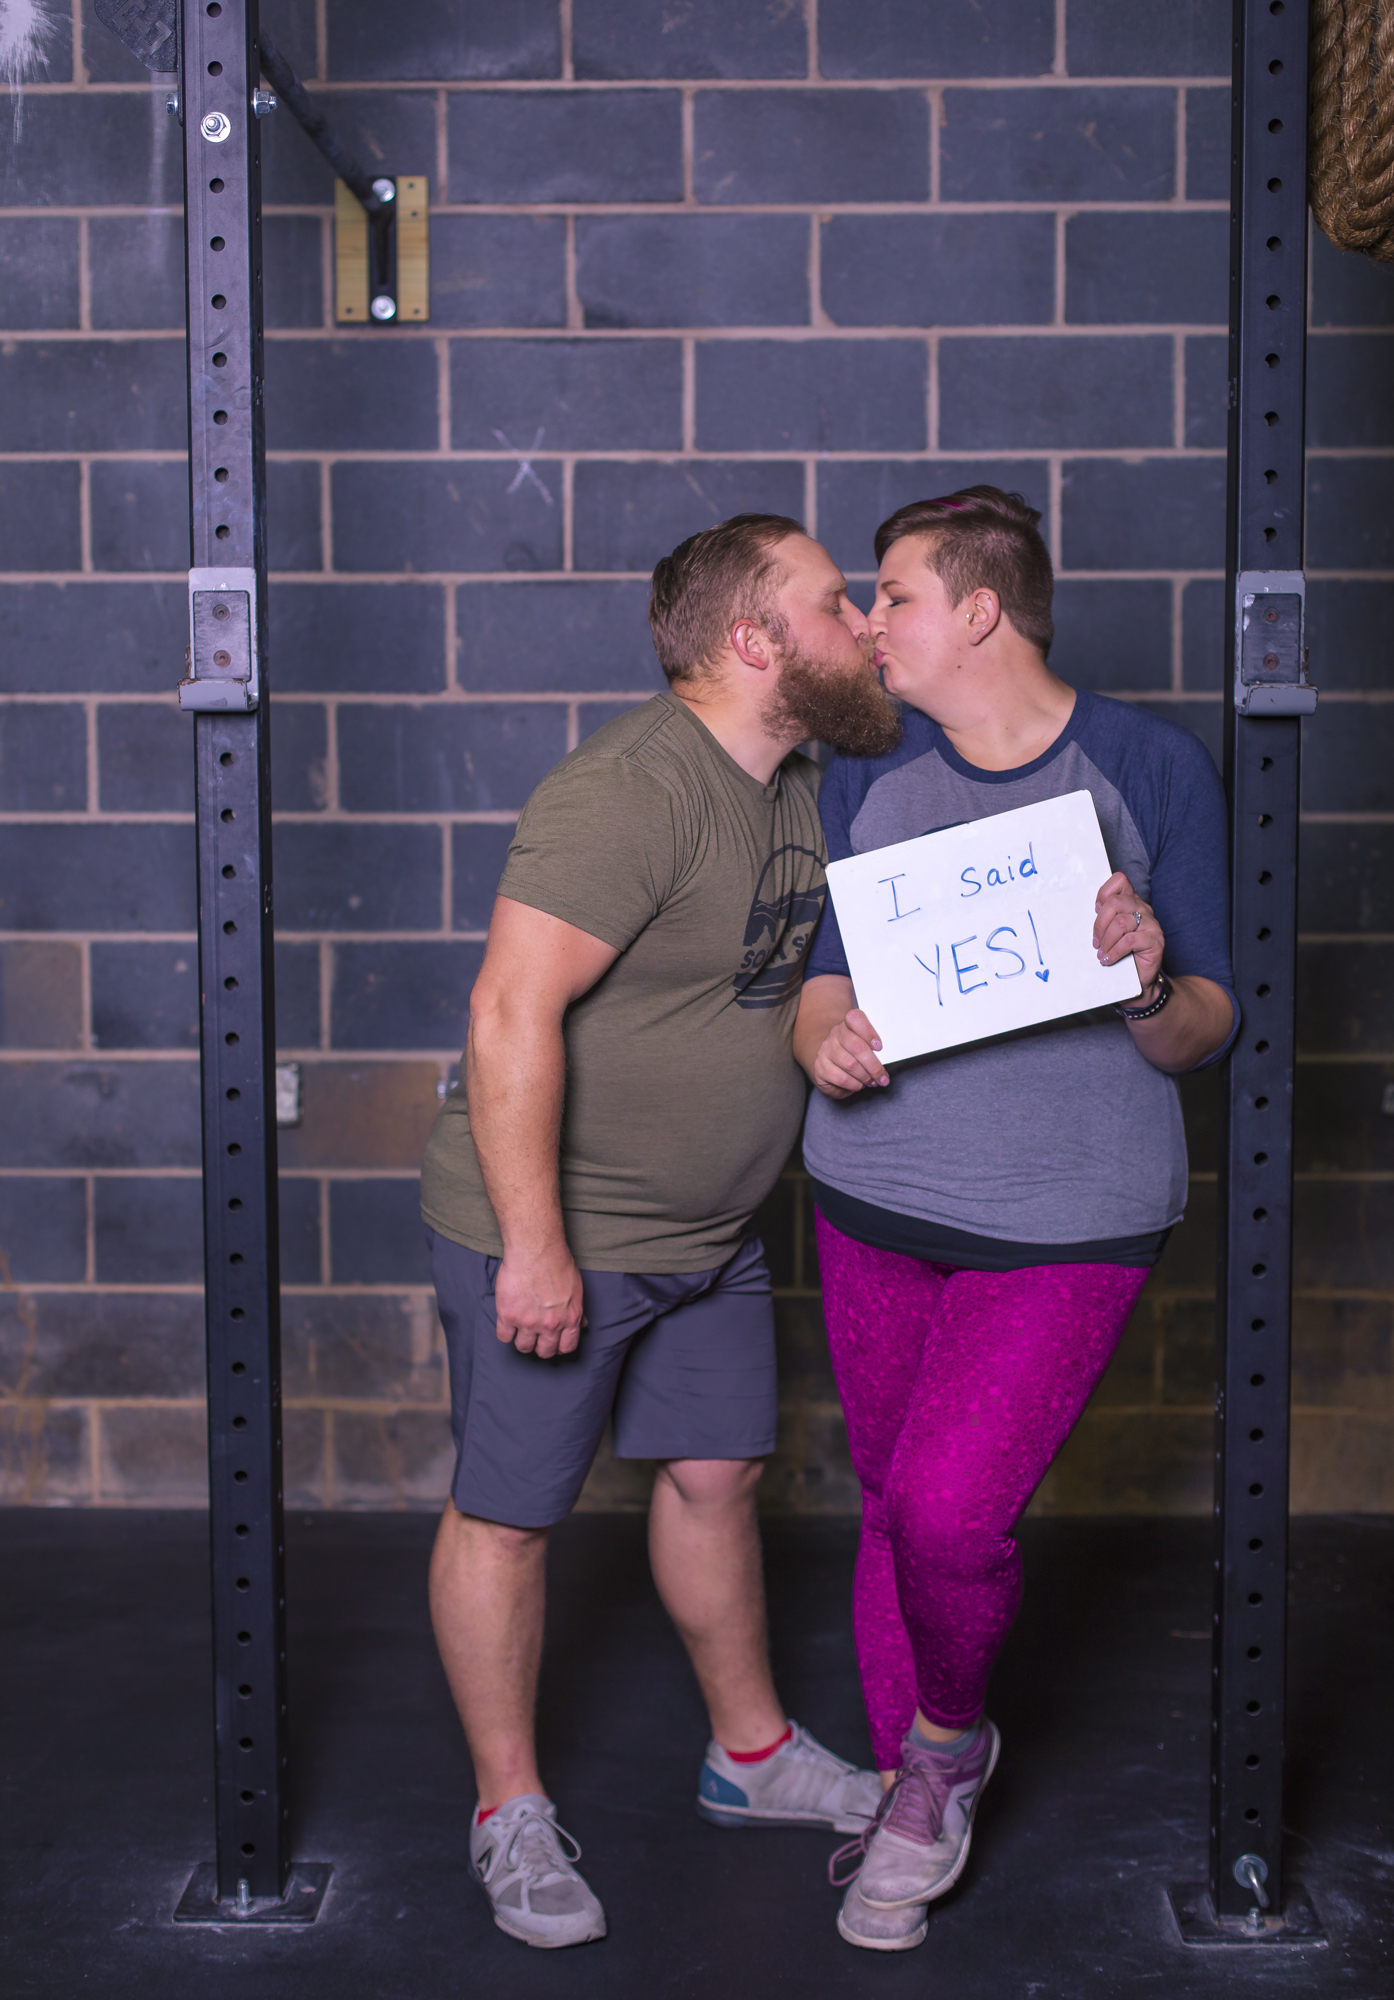 Jessica and Derek Gym Engagement Photos_by Studio Misha Photography_BLOG-87.jpg